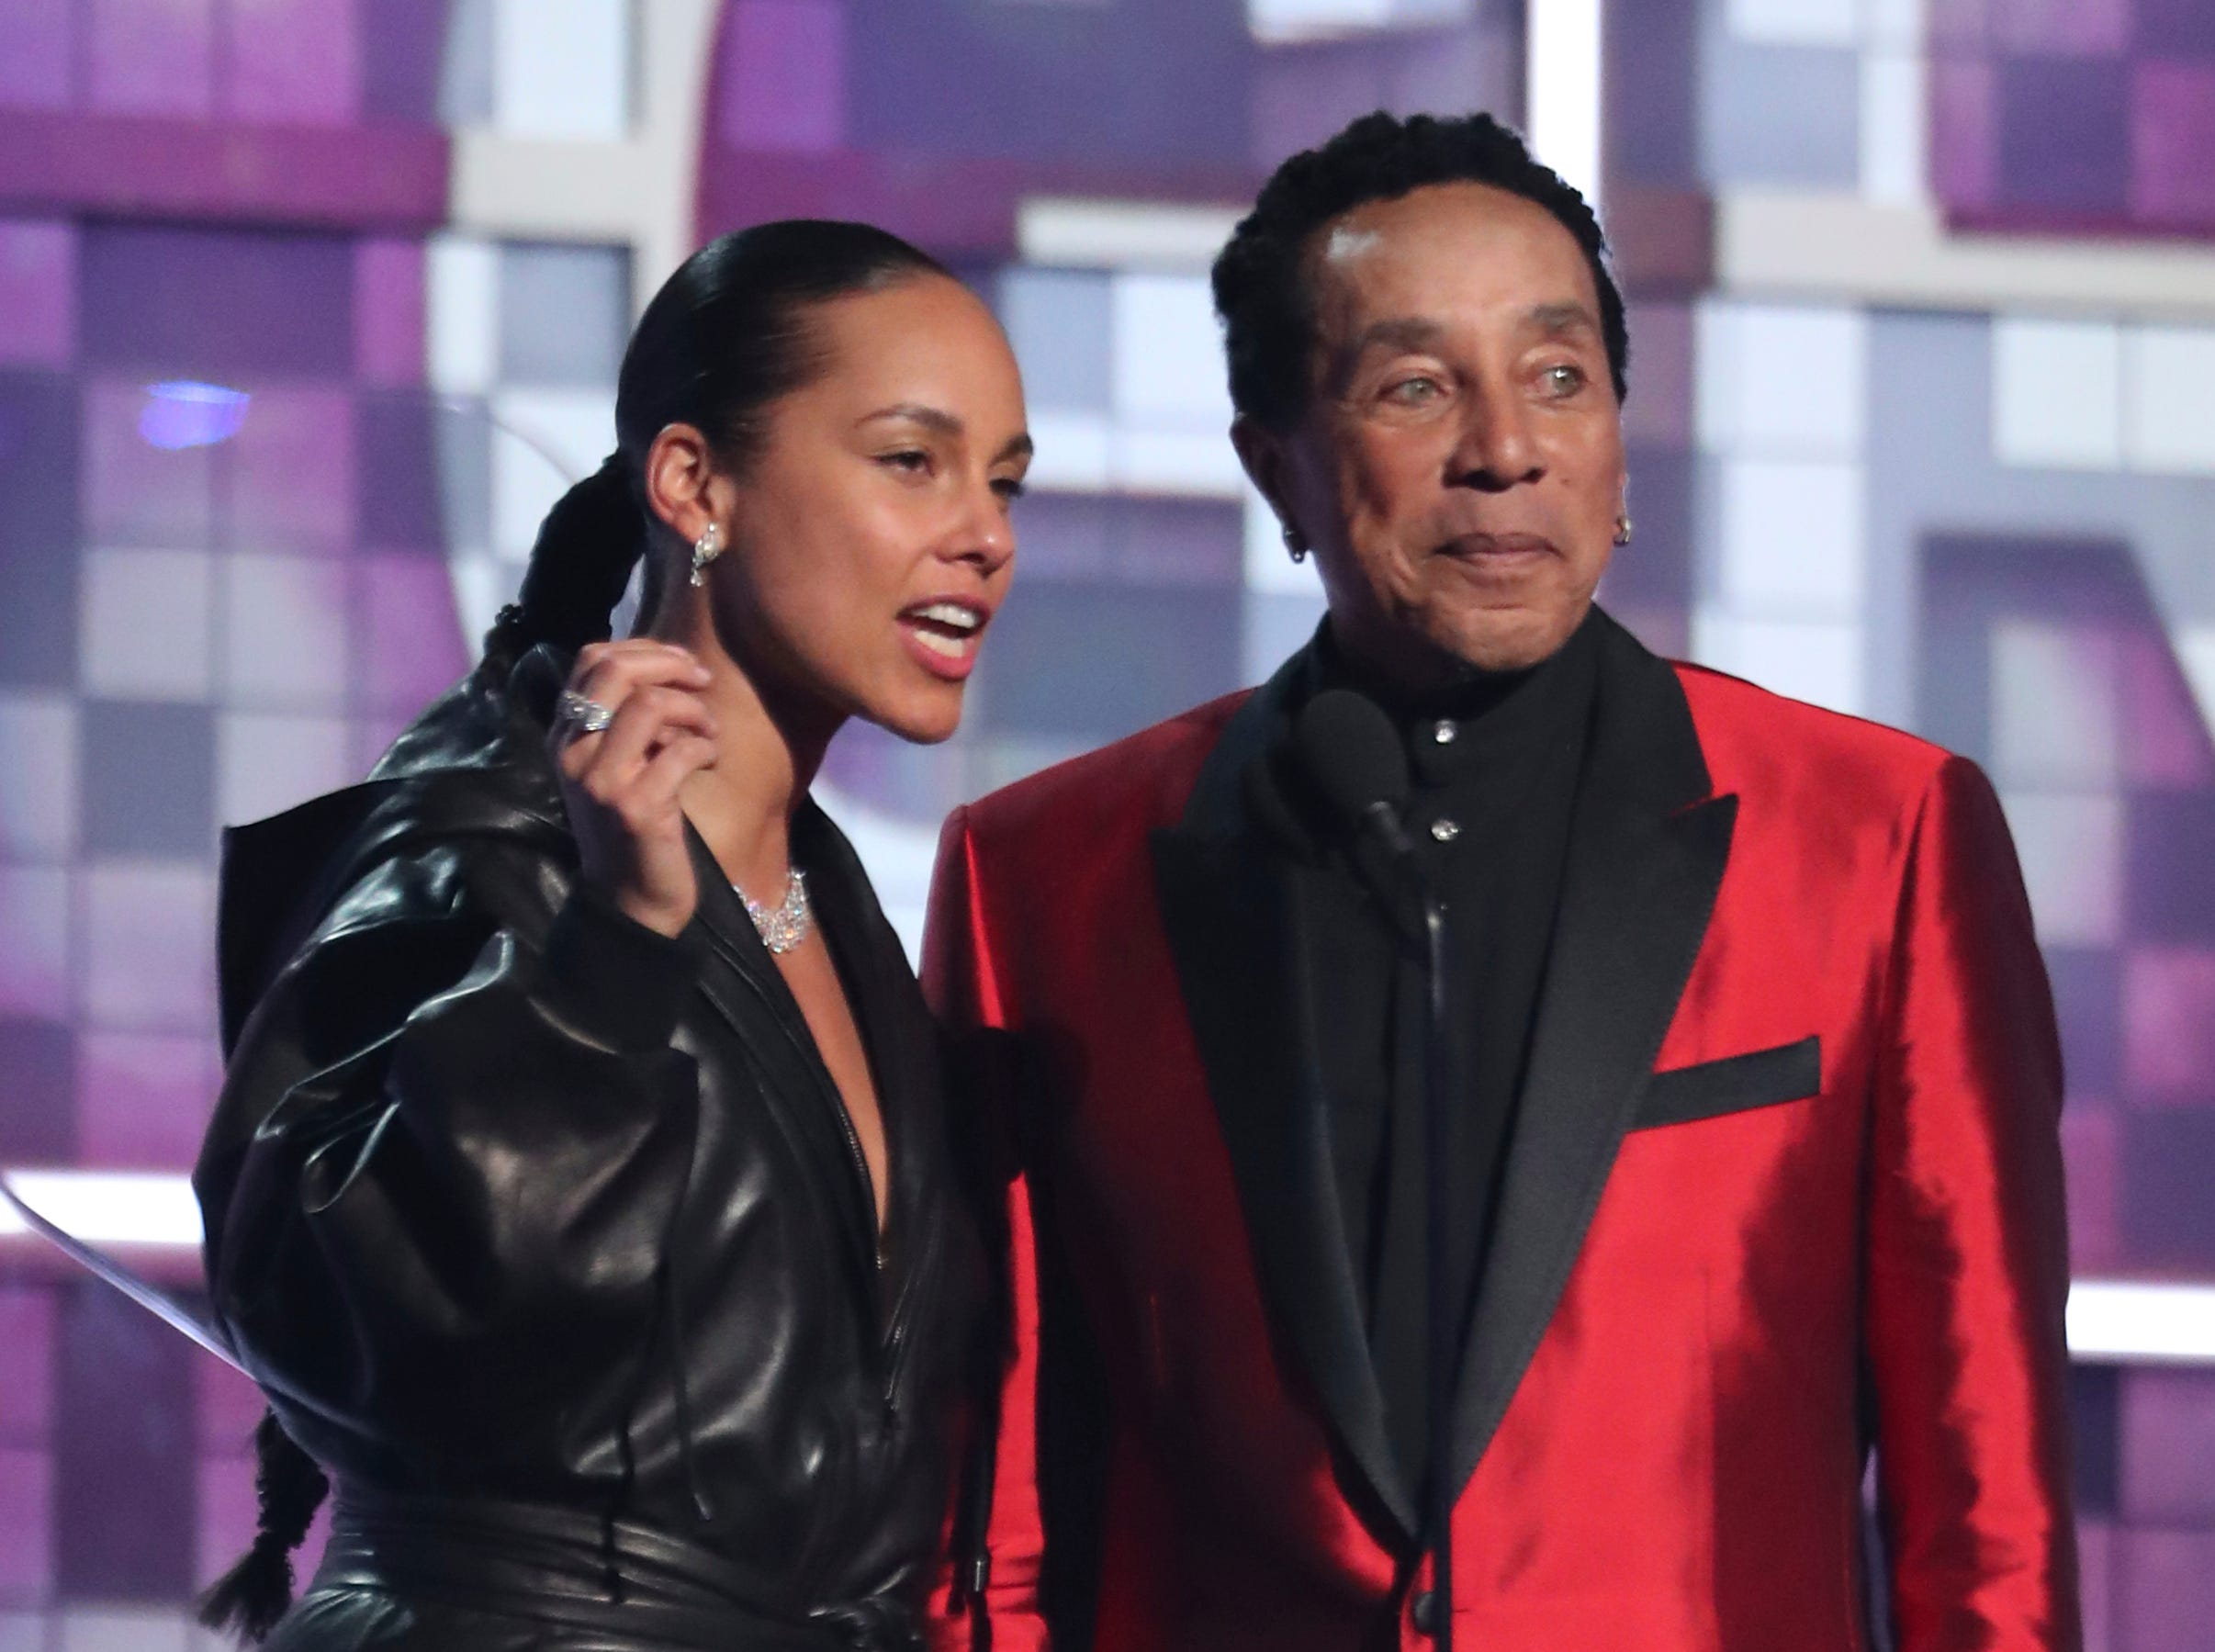 Alicia Keys, left, and Smokey Robinson introduce a tribute to Motown's 60th anniversary at the 61st annual Grammy Awards.